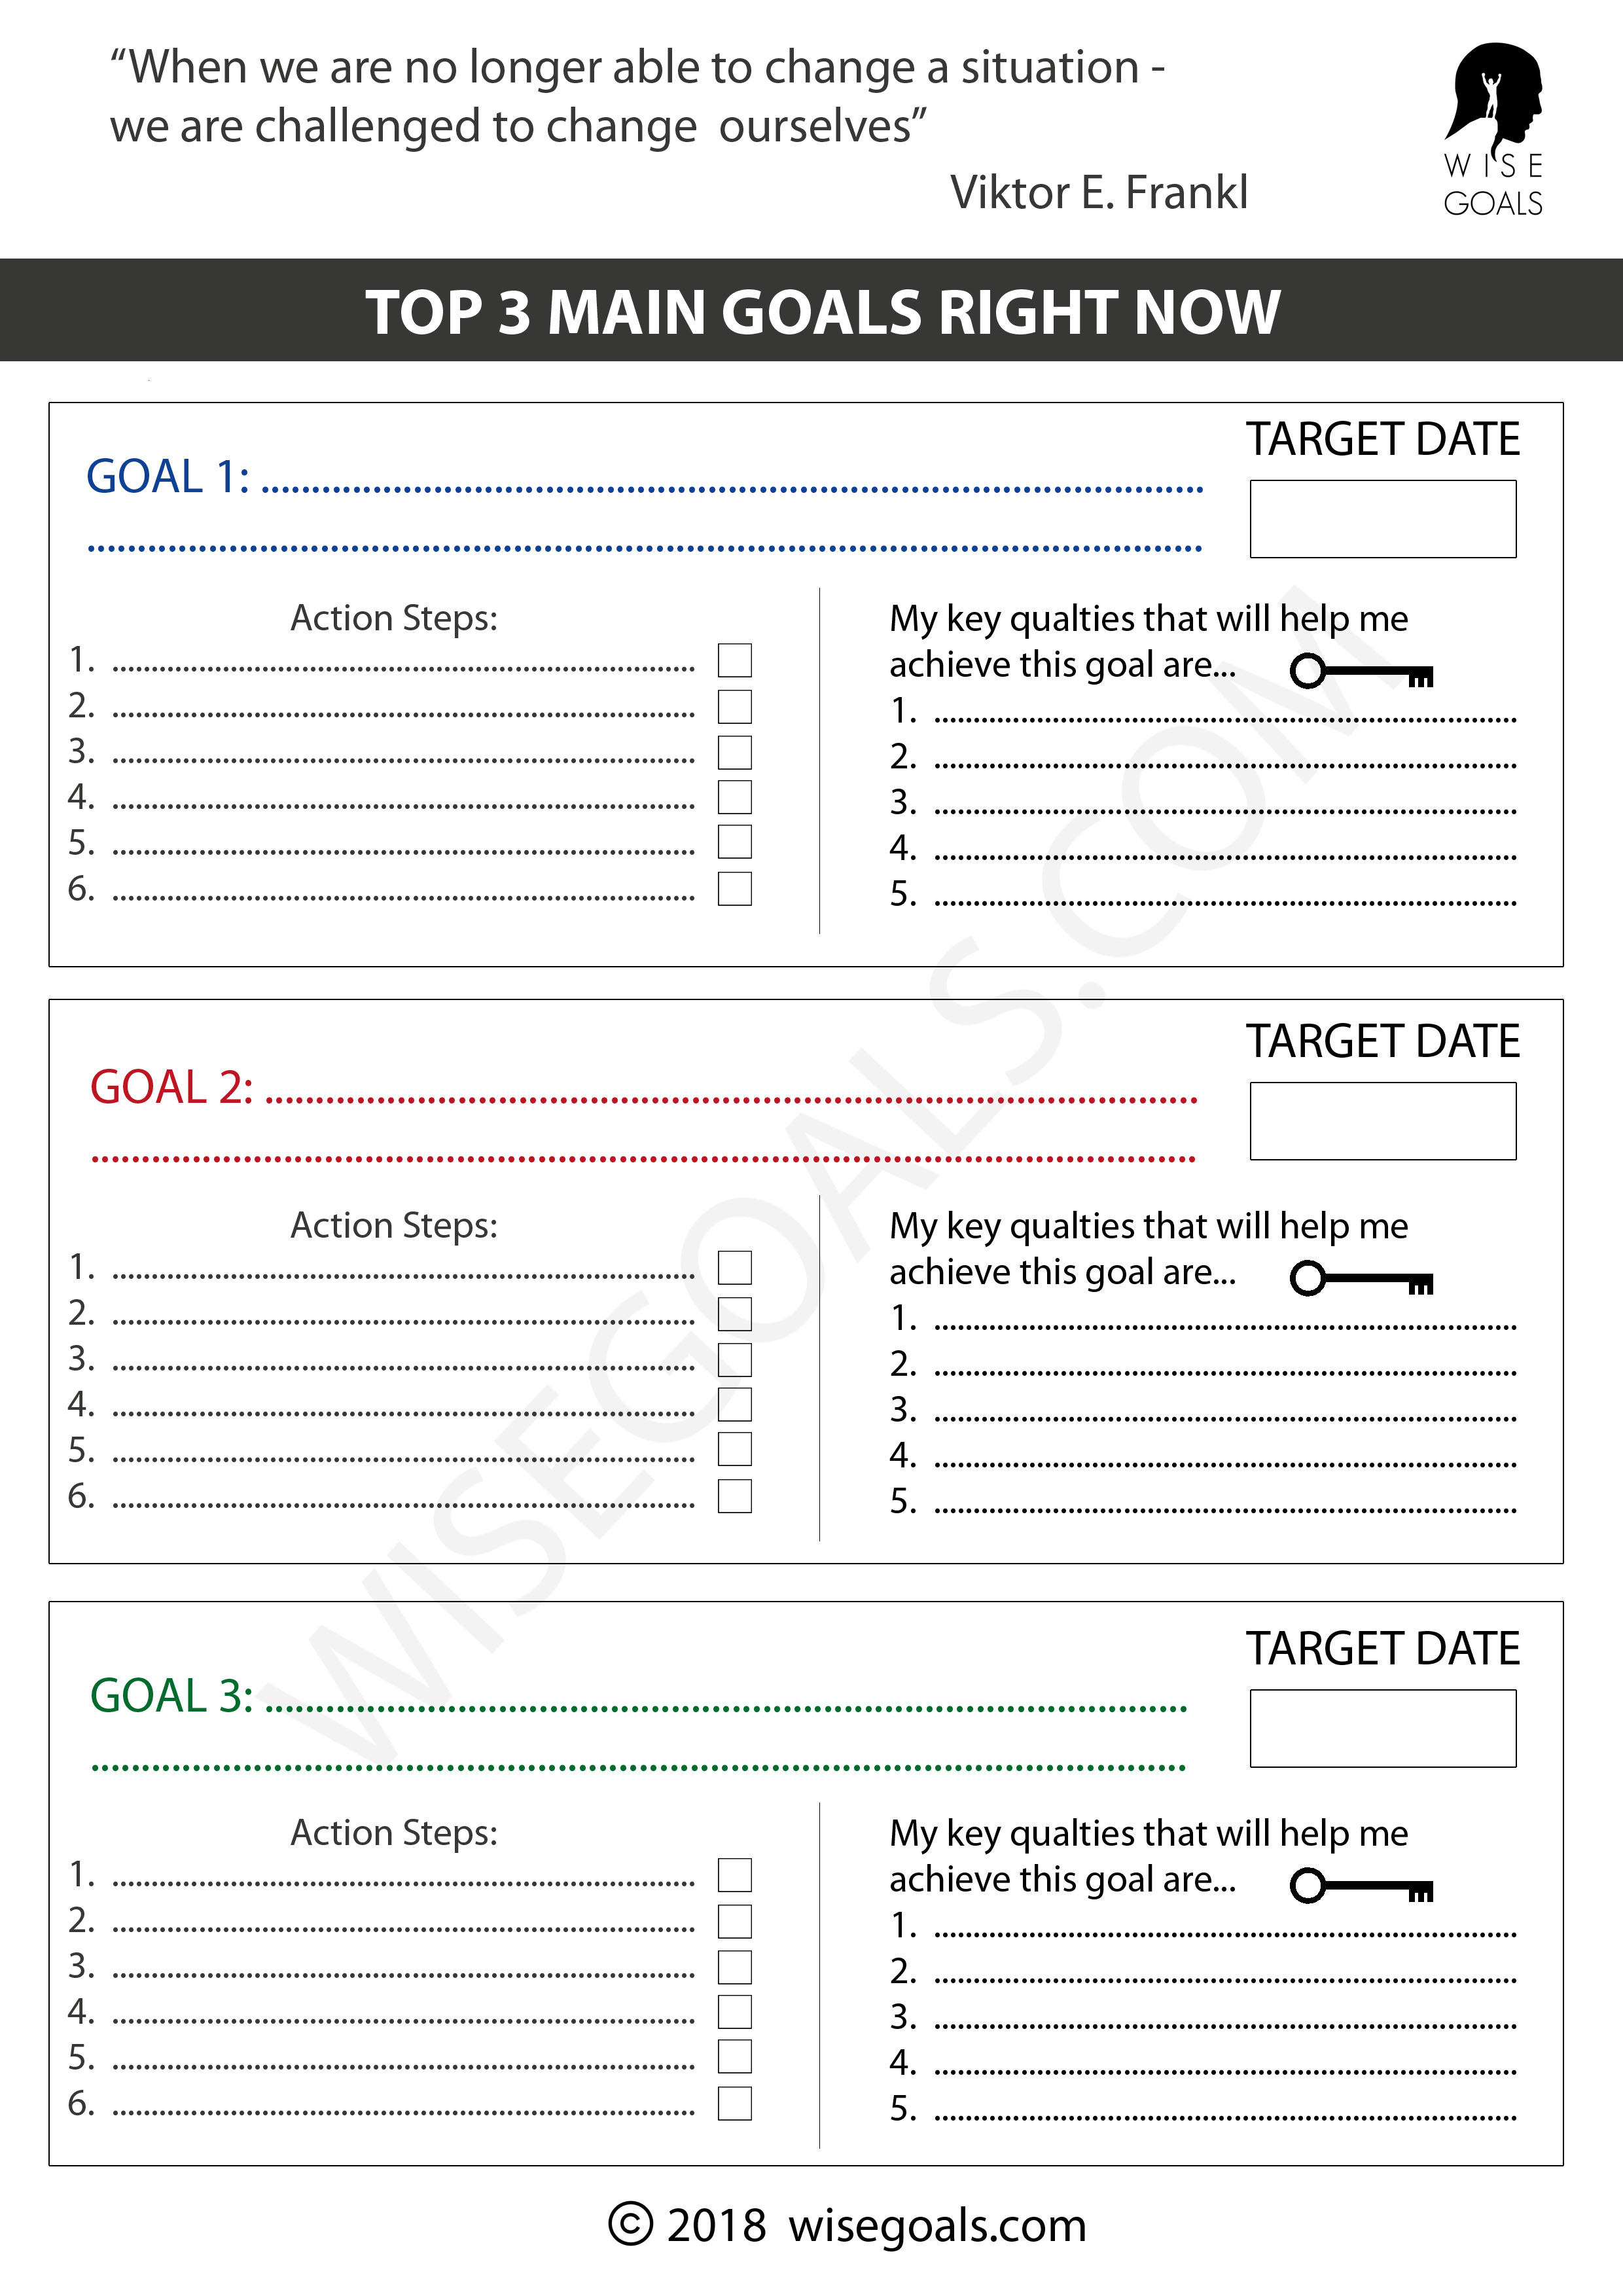 8 goal setting articles to make you aim higher than ever before